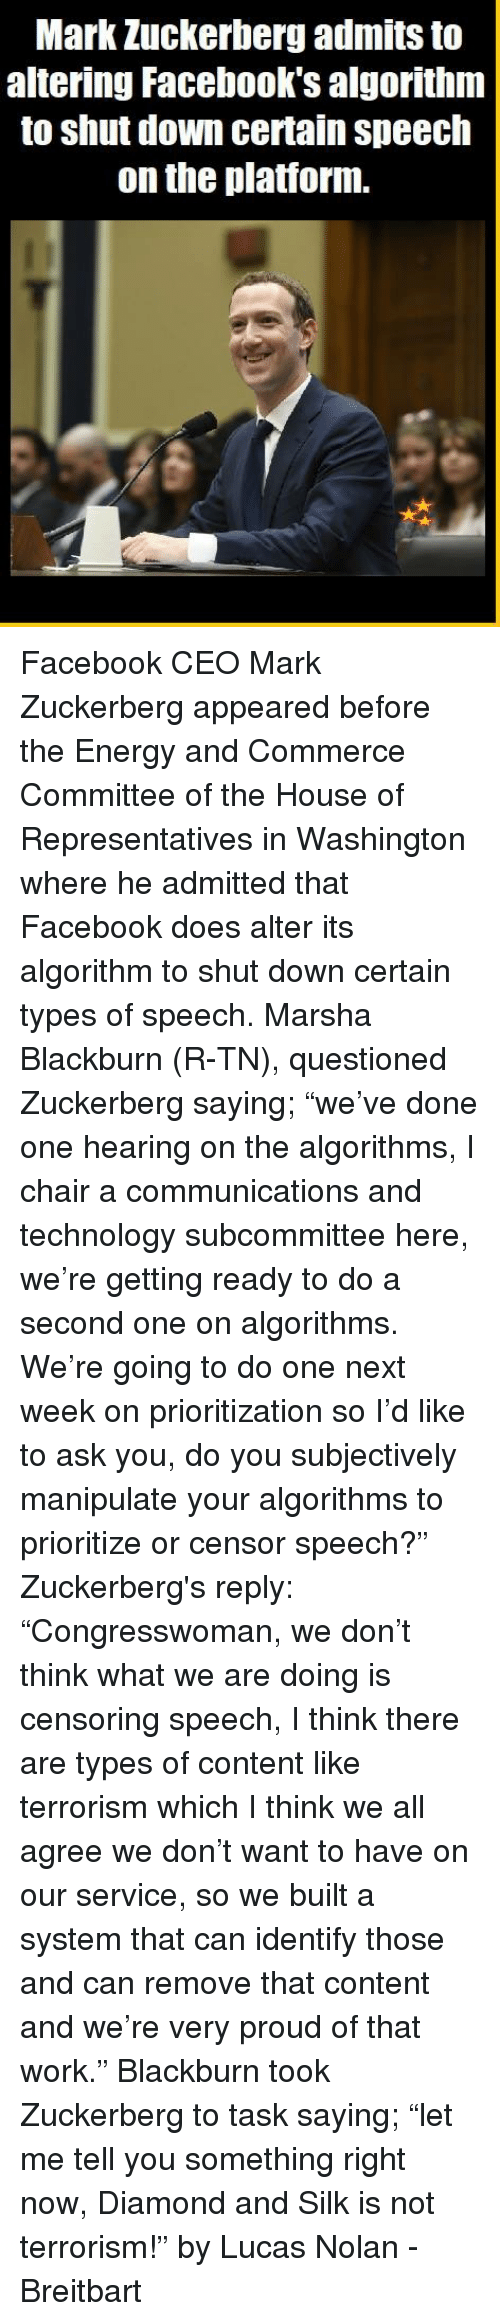 """Energy, Facebook, and Mark Zuckerberg: Mark Zuckerberg admits to  altering Facebook's algorithnm  to shut down certain speech  on the platiorm. Facebook CEO Mark Zuckerberg appeared before the Energy and Commerce Committee of the House of Representatives in Washington where he admitted that Facebook does alter its algorithm to shut down certain types of speech.   Marsha Blackburn (R-TN), questioned Zuckerberg saying; """"we've done one hearing on the algorithms, I chair a communications and technology subcommittee here, we're getting ready to do a second one on algorithms. We're going to do one next week on prioritization so I'd like to ask you, do you subjectively manipulate your algorithms to prioritize or censor speech?""""   Zuckerberg's reply: """"Congresswoman, we don't think what we are doing is censoring speech, I think there are types of content like terrorism which I think we all agree we don't want to have on our service, so we built a system that can identify those and can remove that content and we're very proud of that work.""""  Blackburn took Zuckerberg to task saying; """"let me tell you something right now, Diamond and Silk is not terrorism!""""   by Lucas Nolan - Breitbart"""